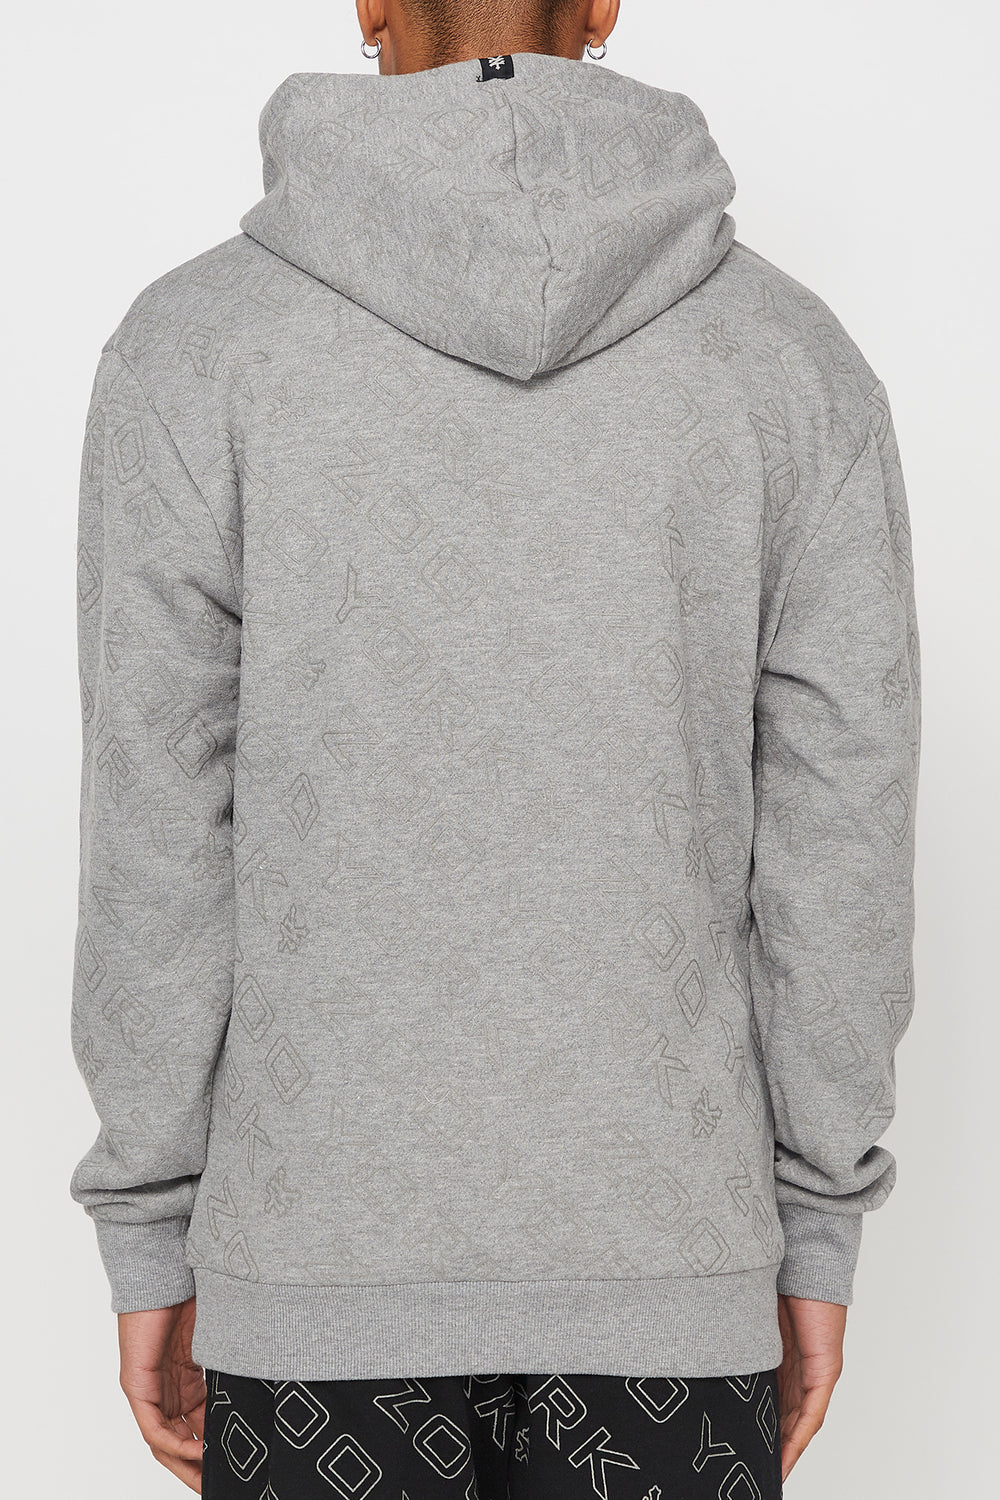 Zoo York Mens Reflective Hoodie Heather Grey